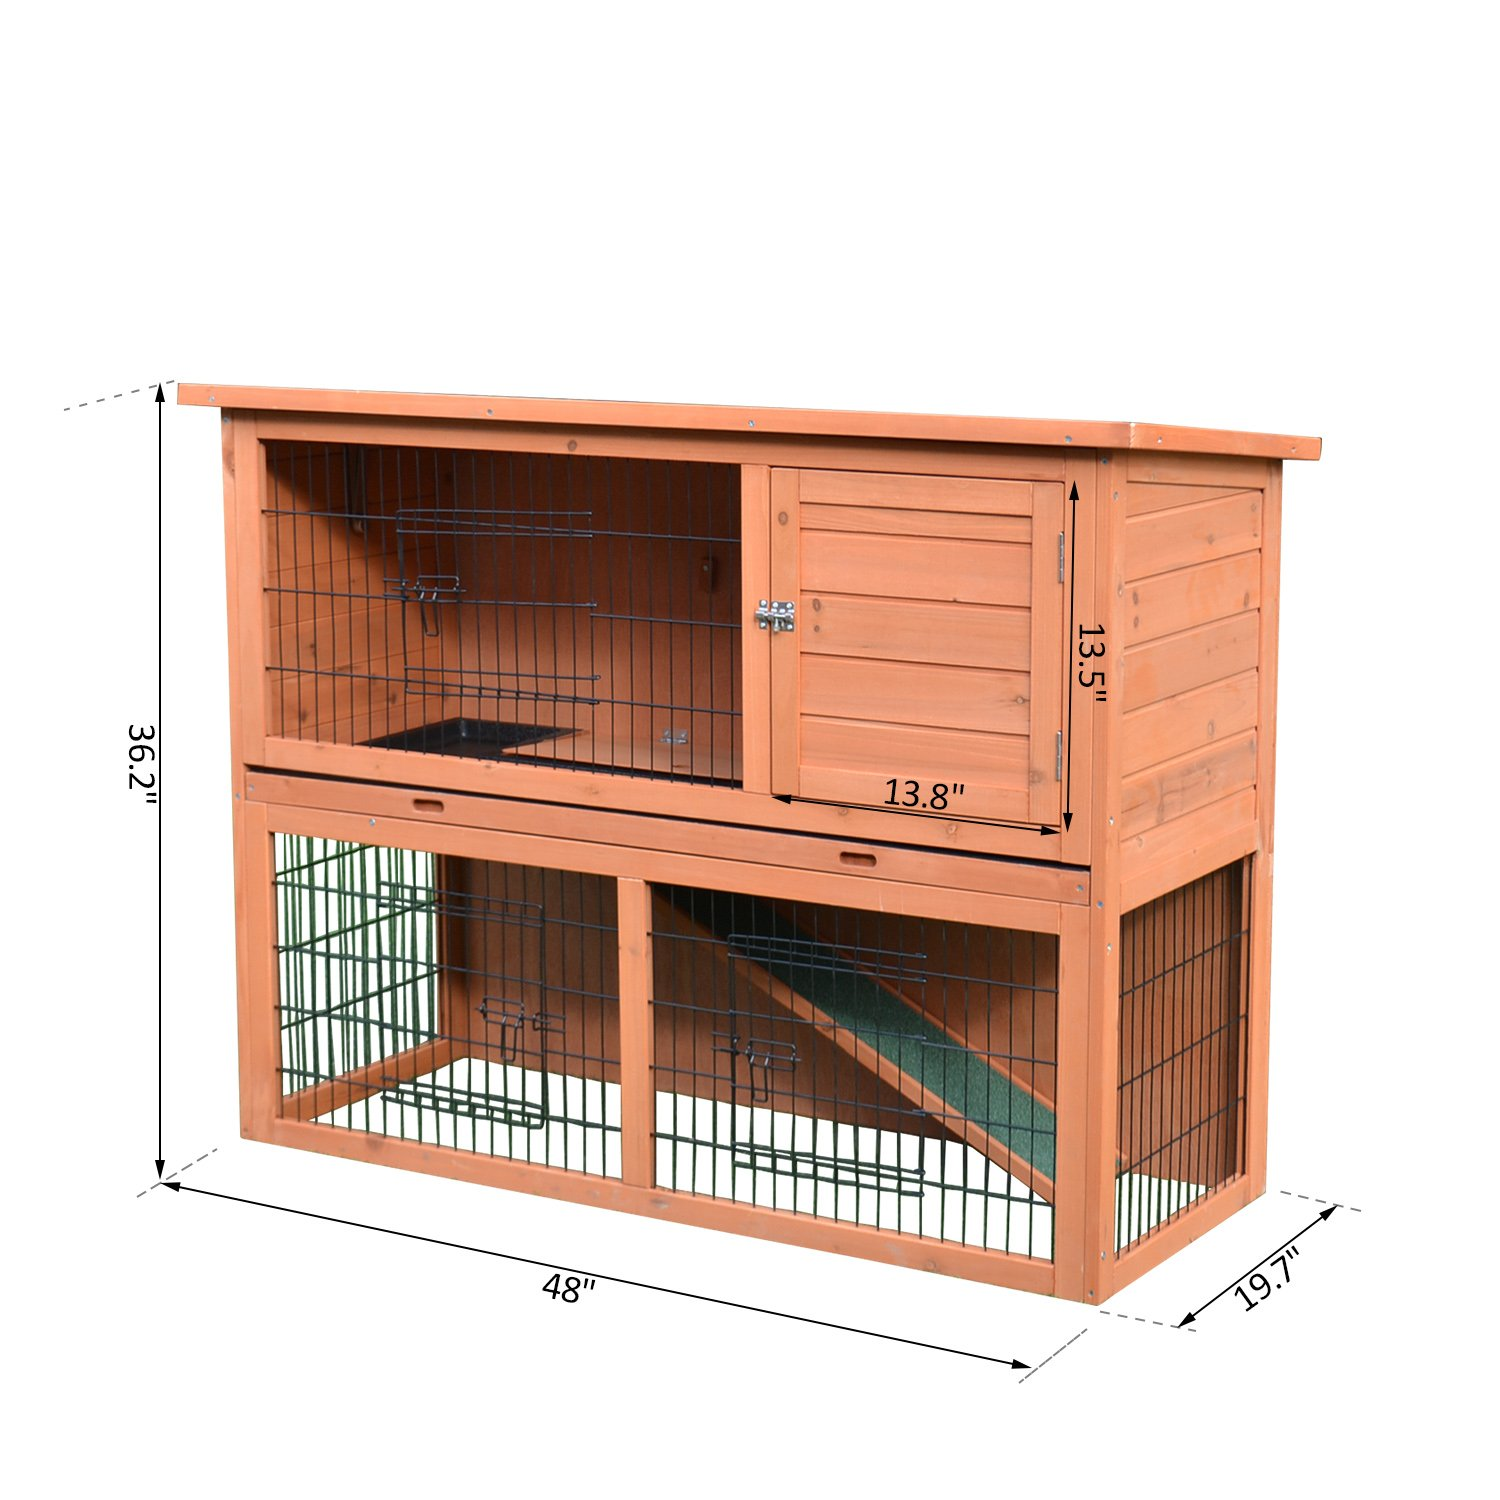 PawHut 48'' Multi Level Compact Wooden Playpen Outdoor Rabbit Small Animal Pet Cage With Enclosed Run by PawHut (Image #7)